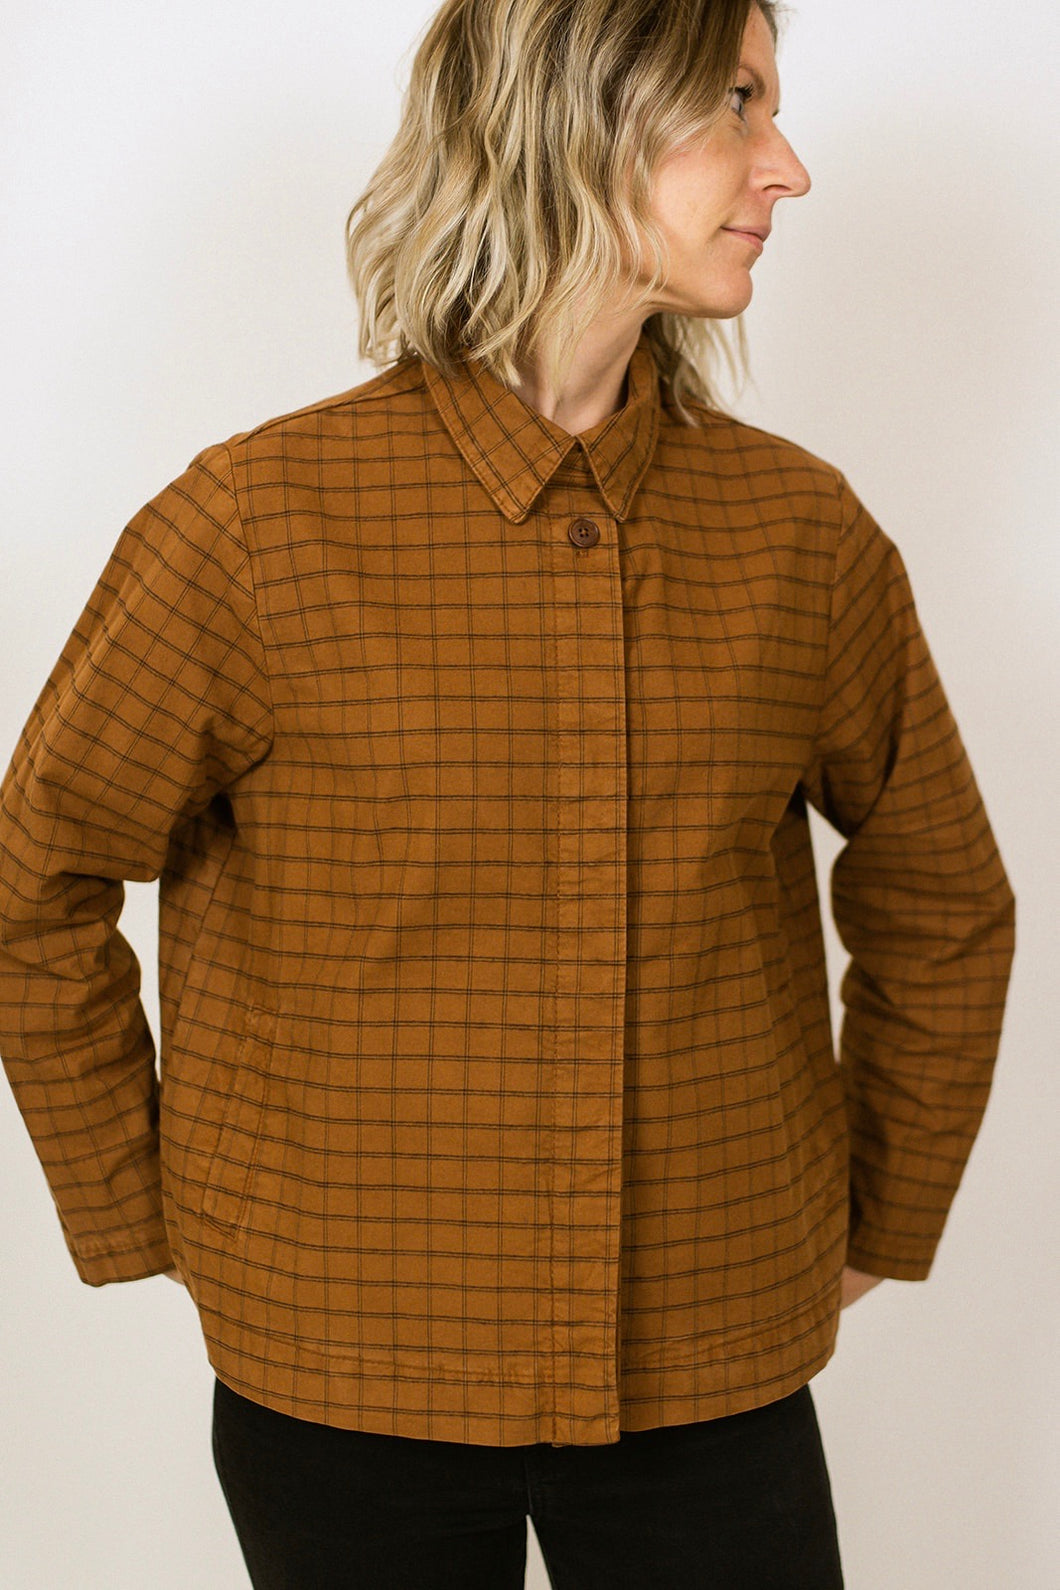 Wallis Shirt/Jacket - Caramel